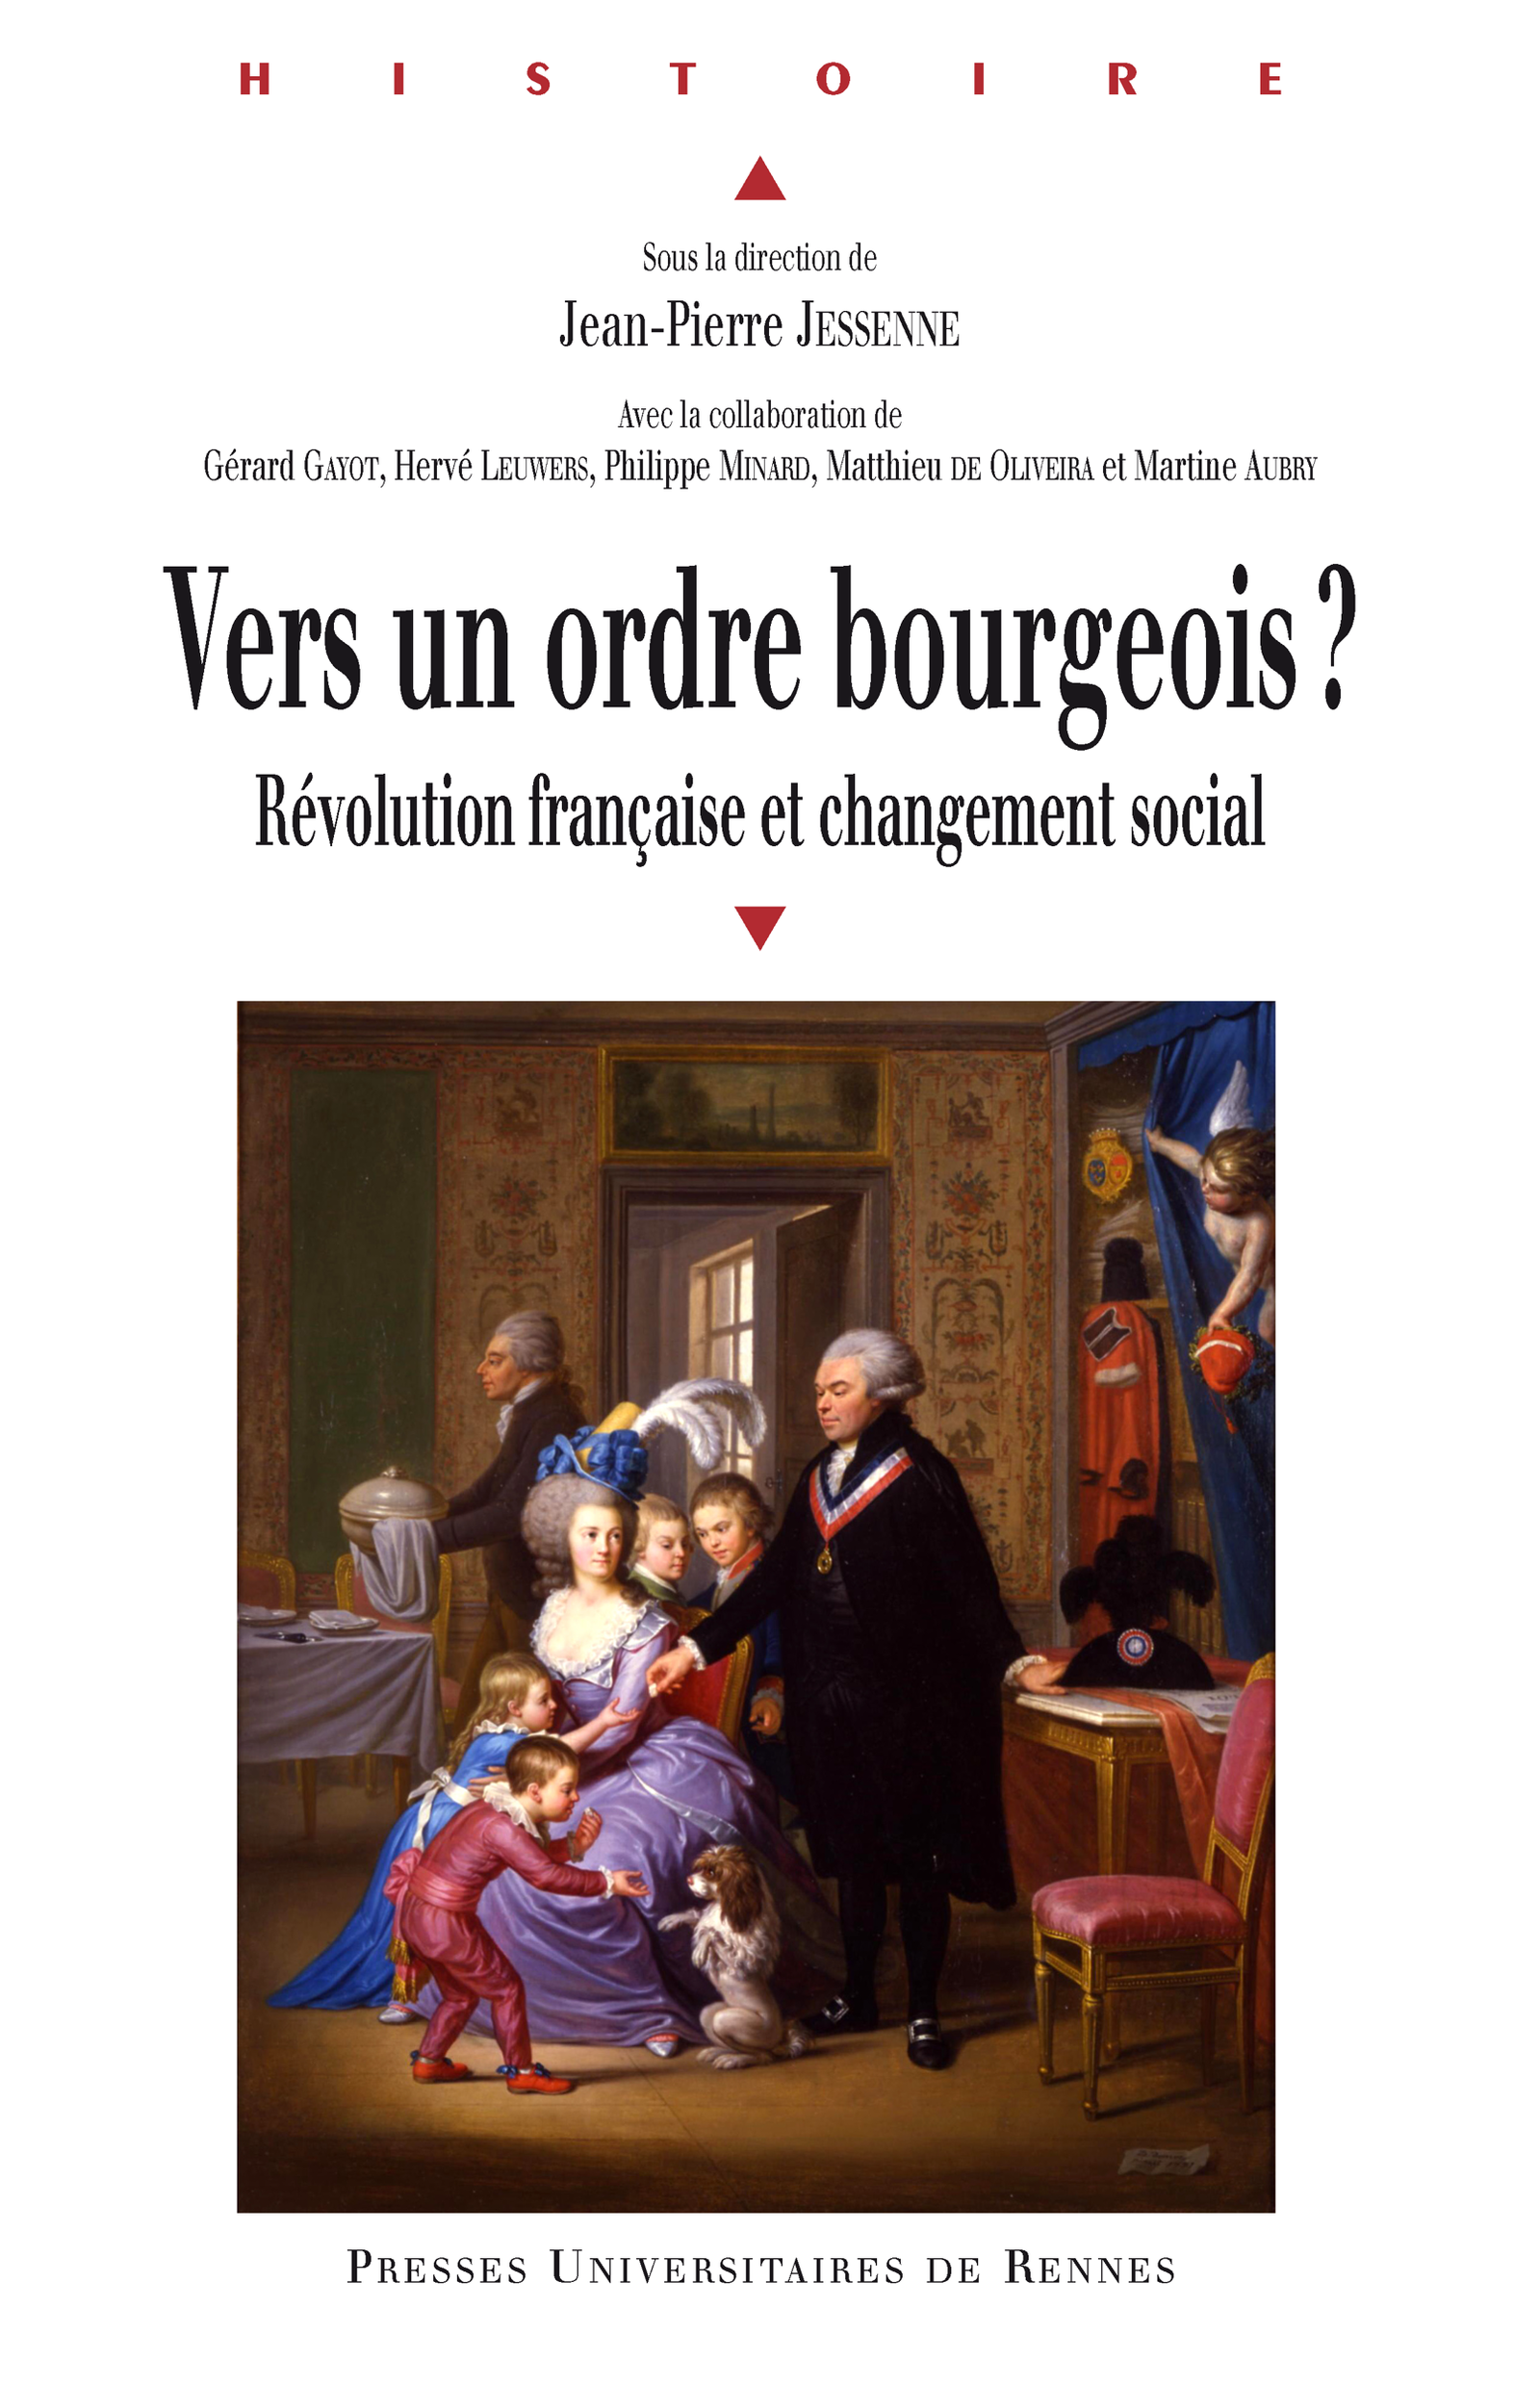 Vers un ordre bourgeois?